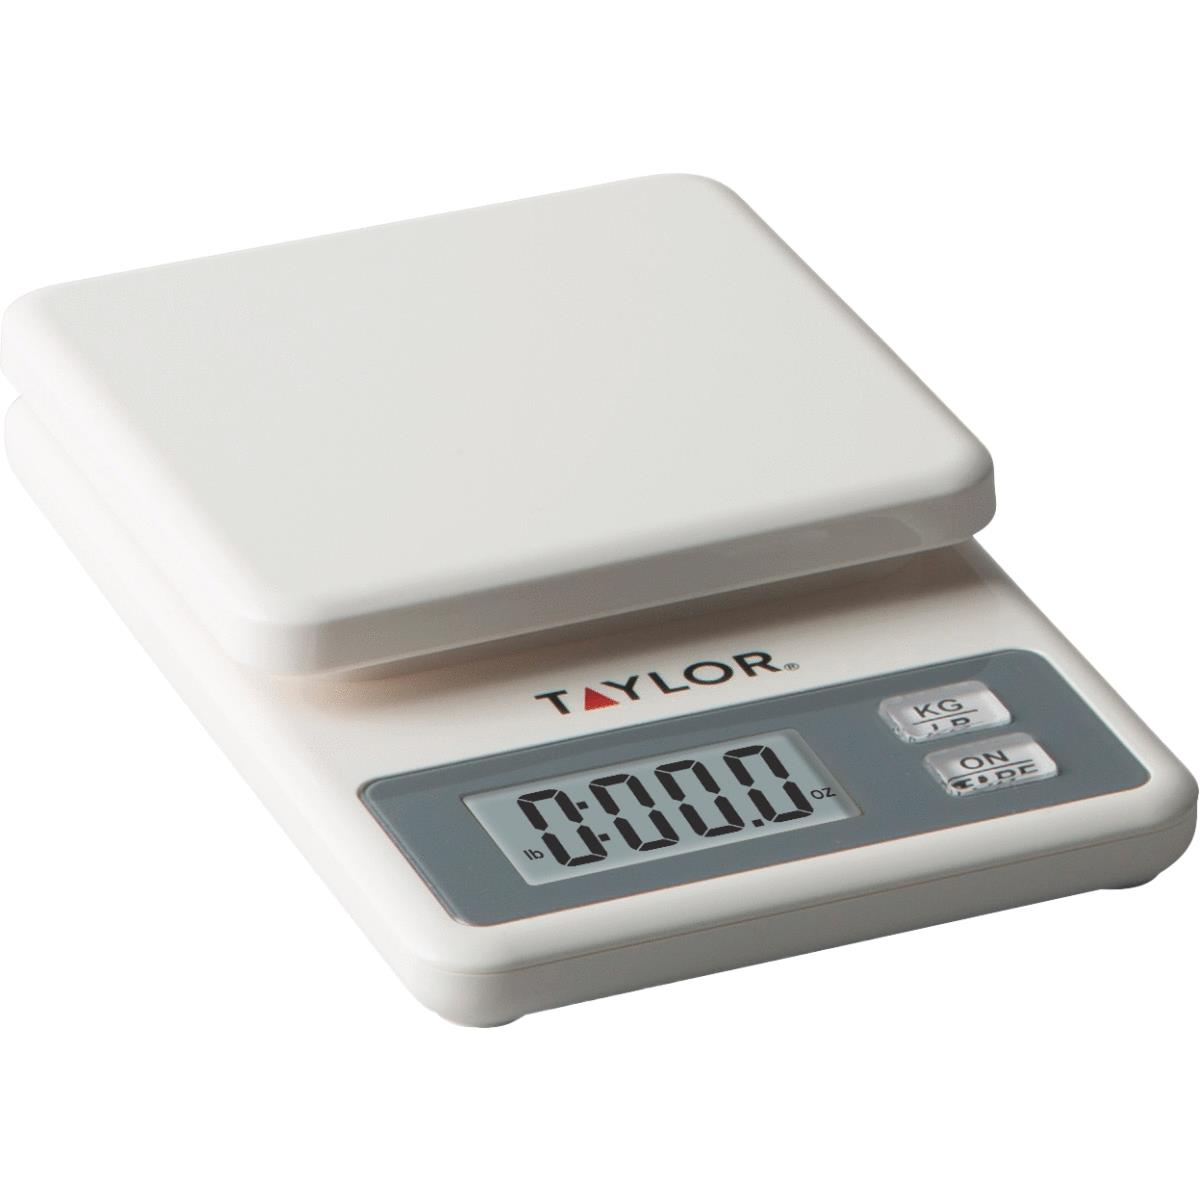 Taylor Digital Compact Food Scale